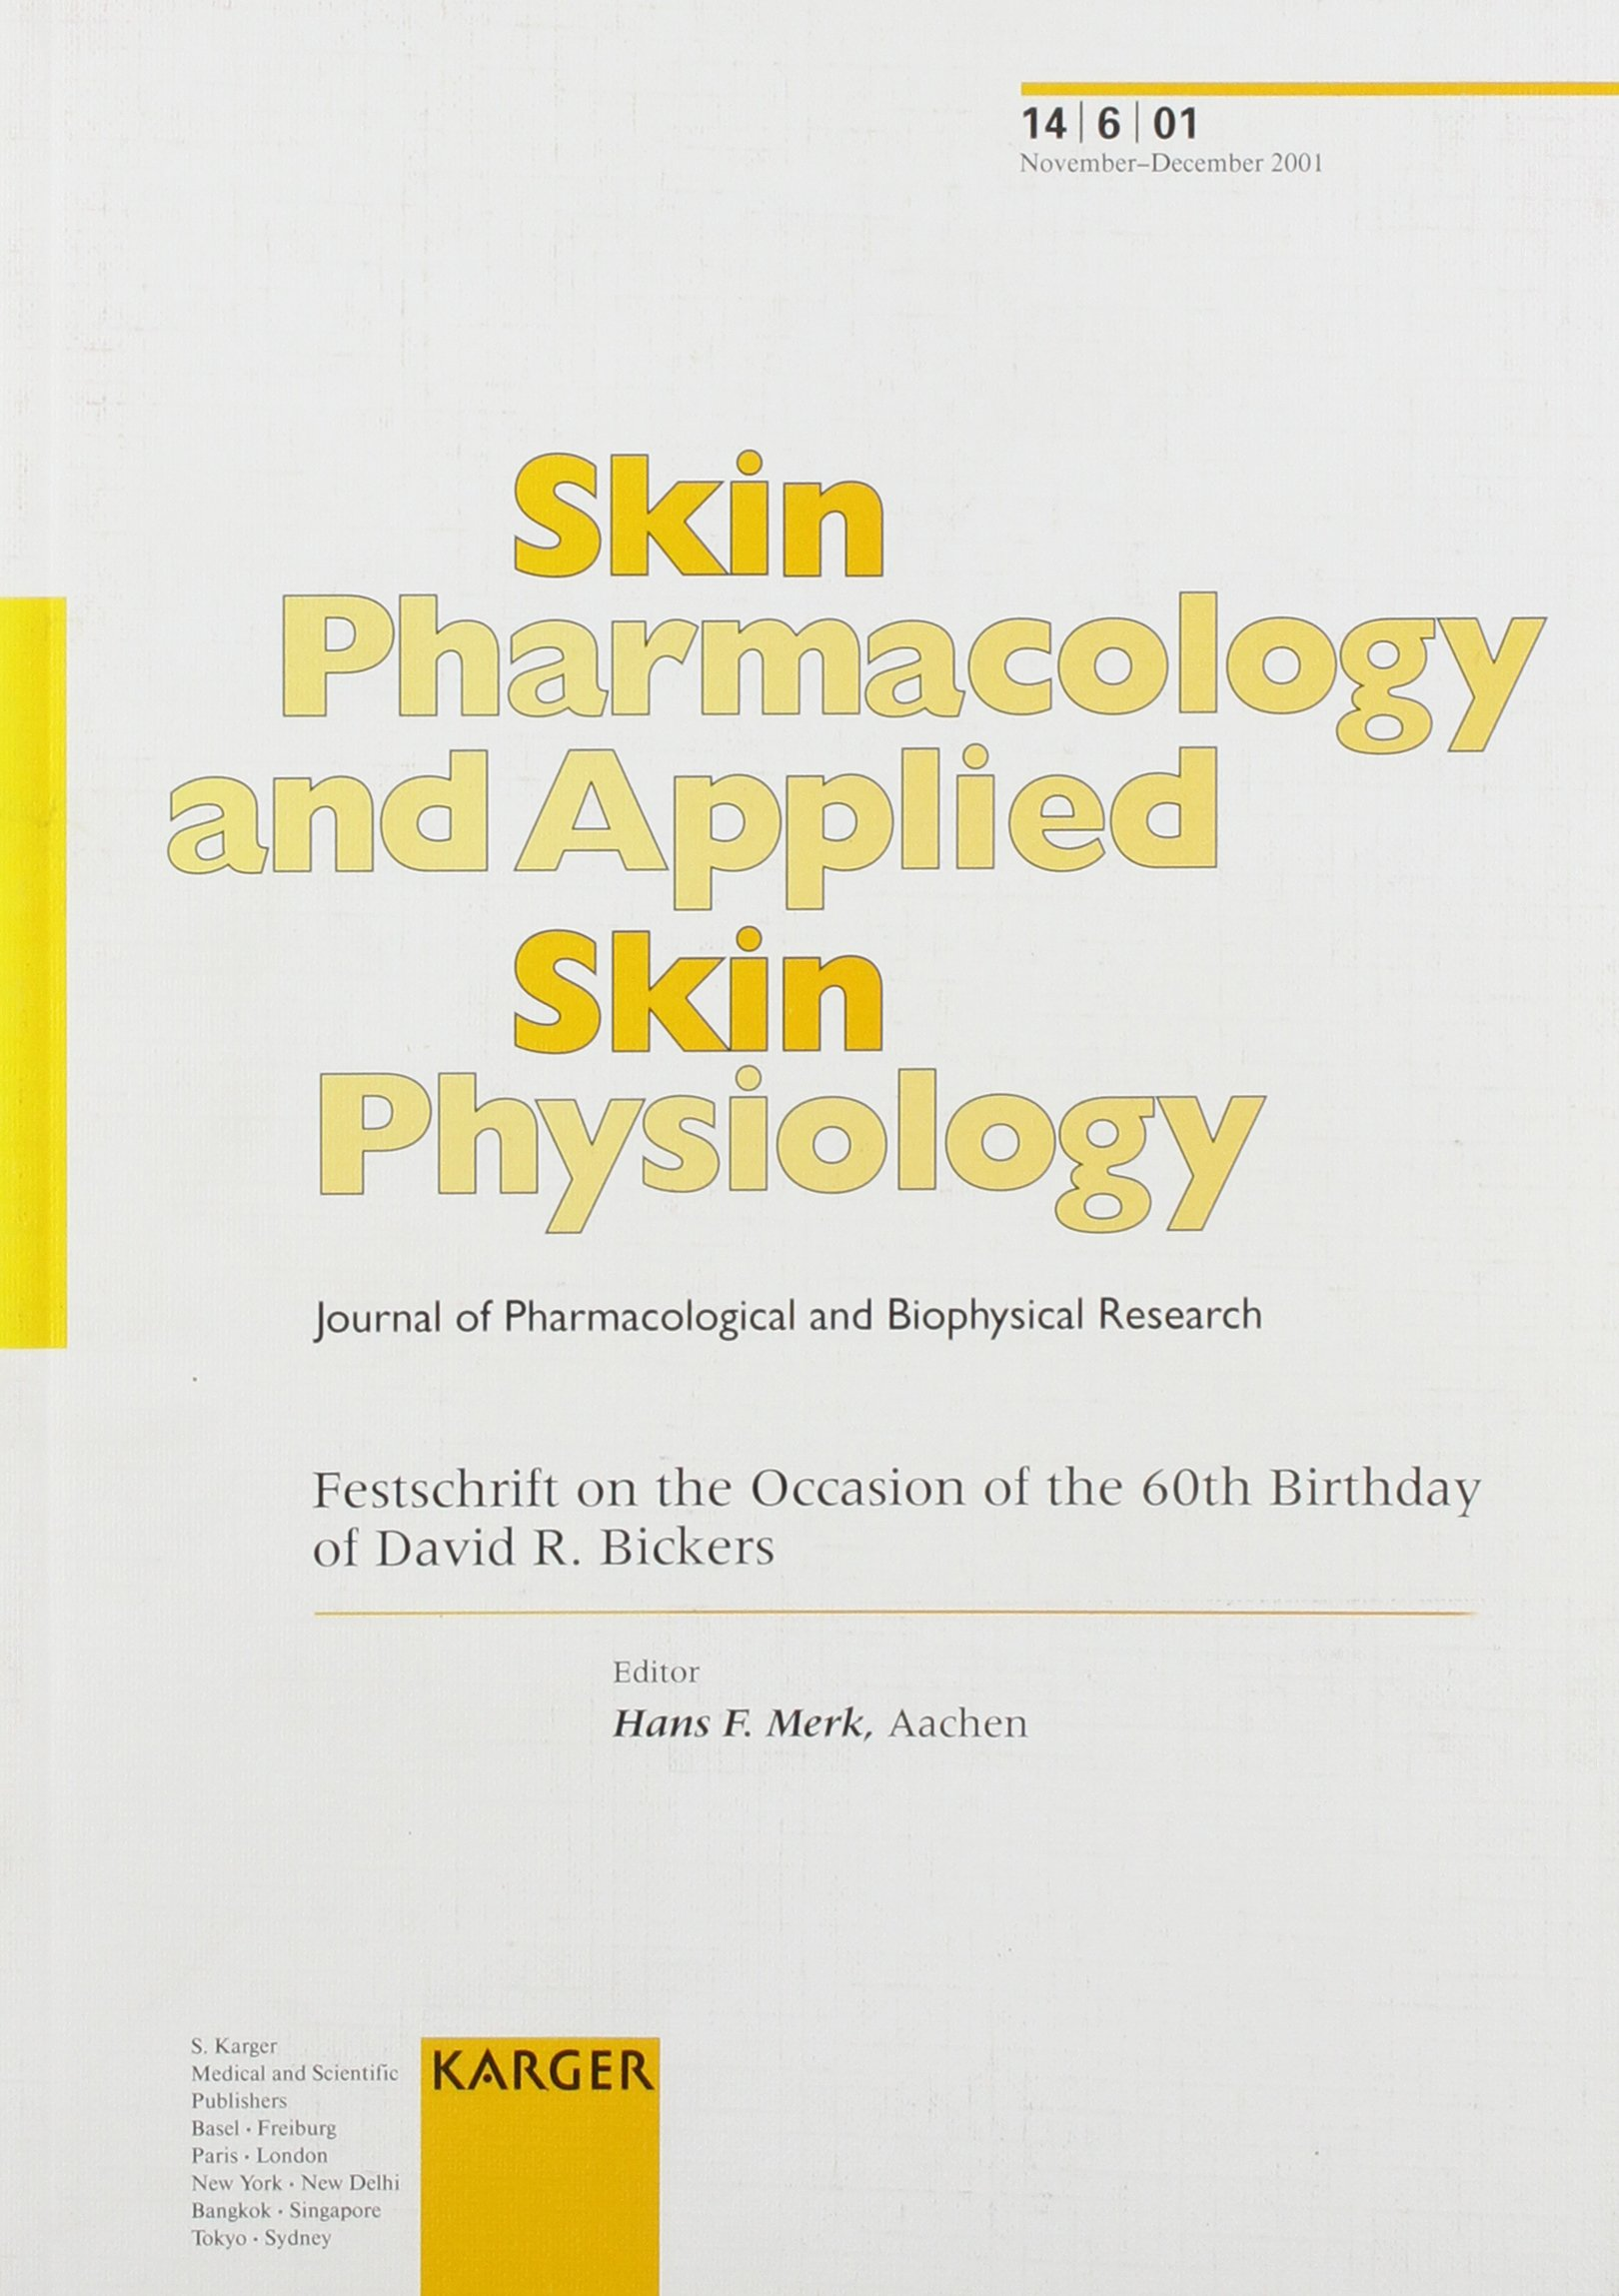 Festschrift on the Occasion of the 60th Birthday of David R. Bickers (Special Issue: Skin Pharmacology and Applied Skin Physiology 2001, 6) pdf epub